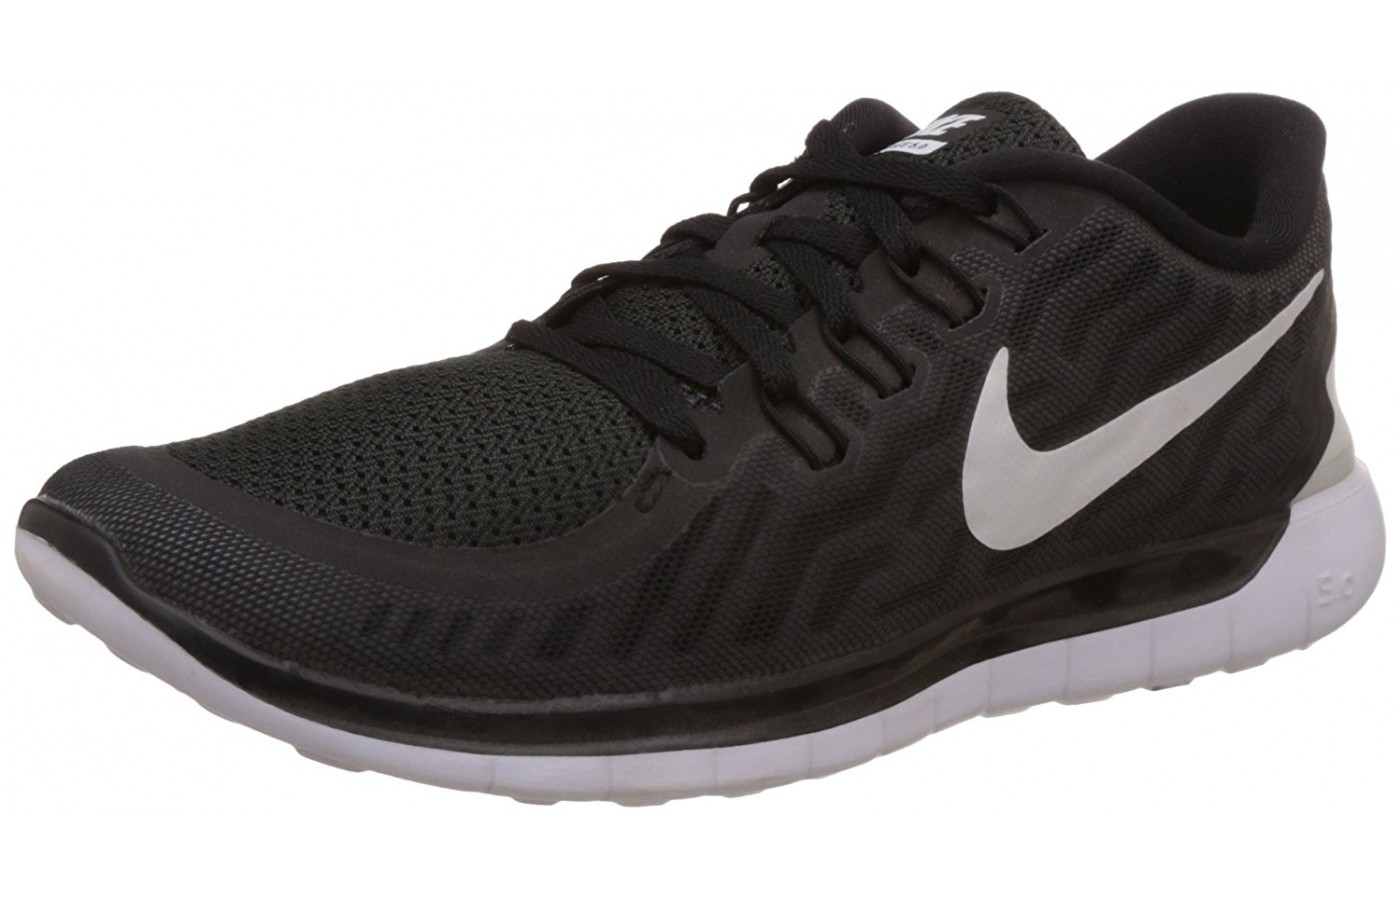 new style 61705 947c4 angled view of the Nike Free 5.0 ...